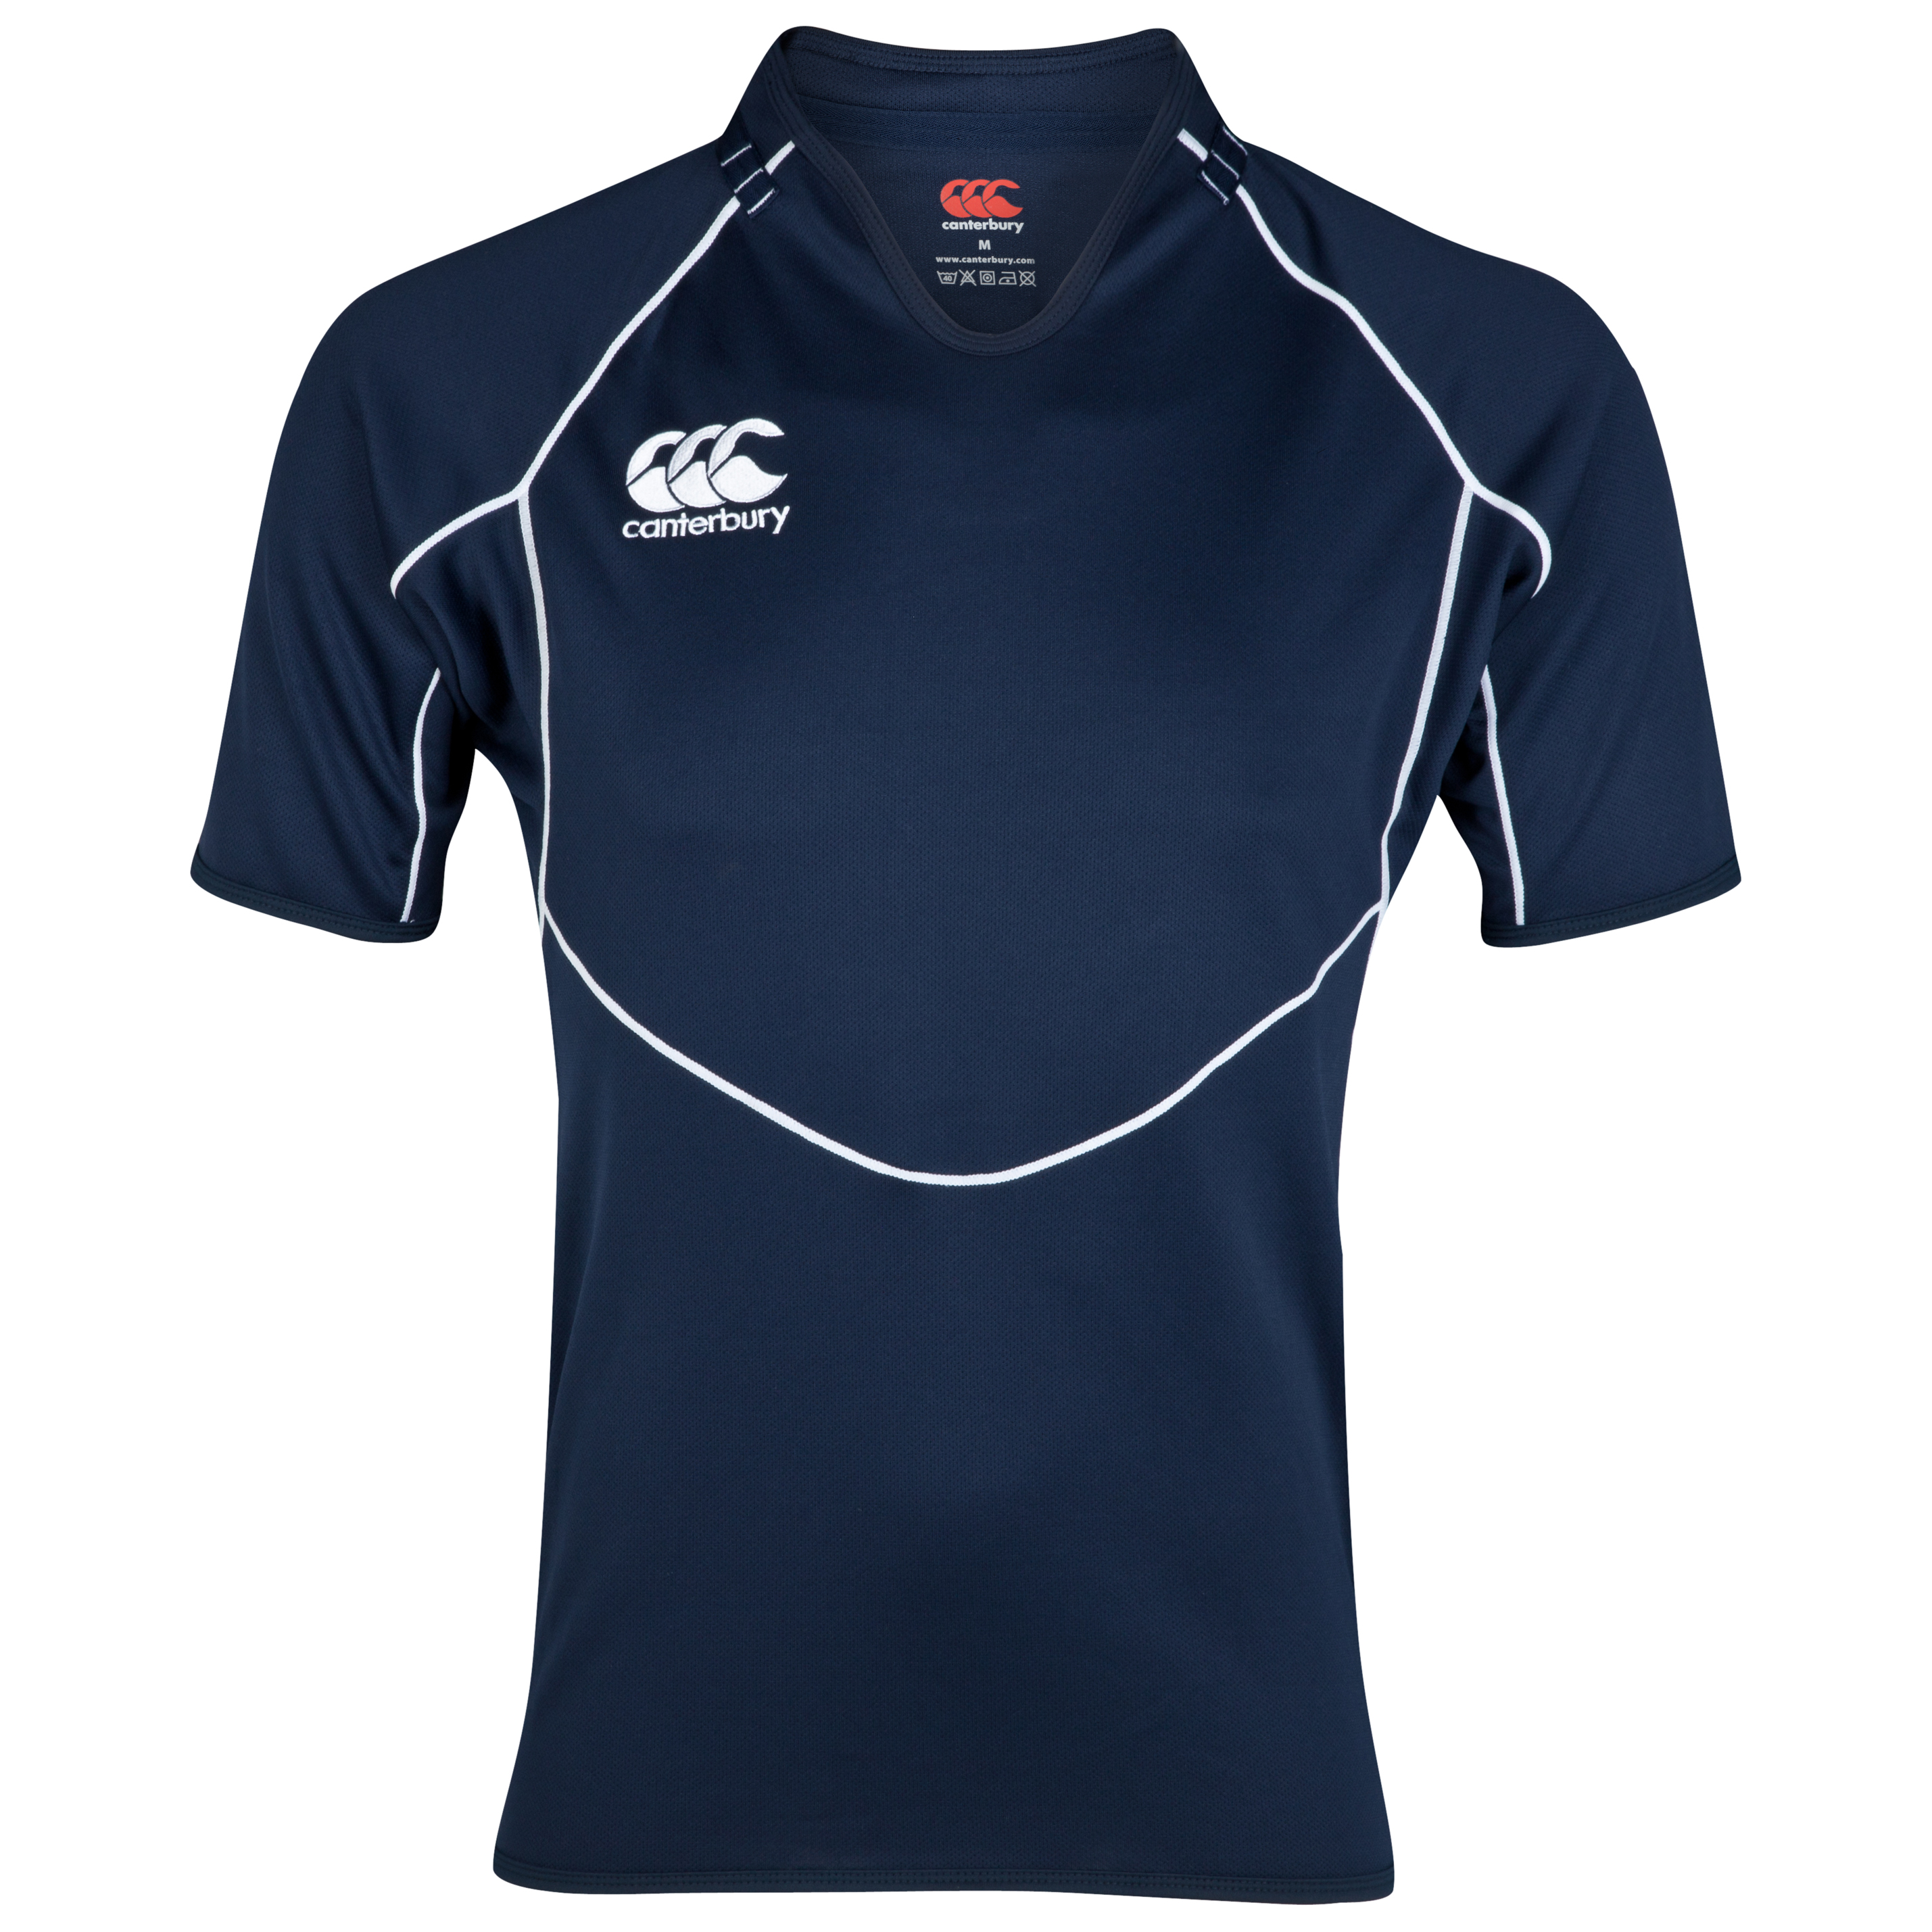 Canterbury Training Jersey - Navy/White